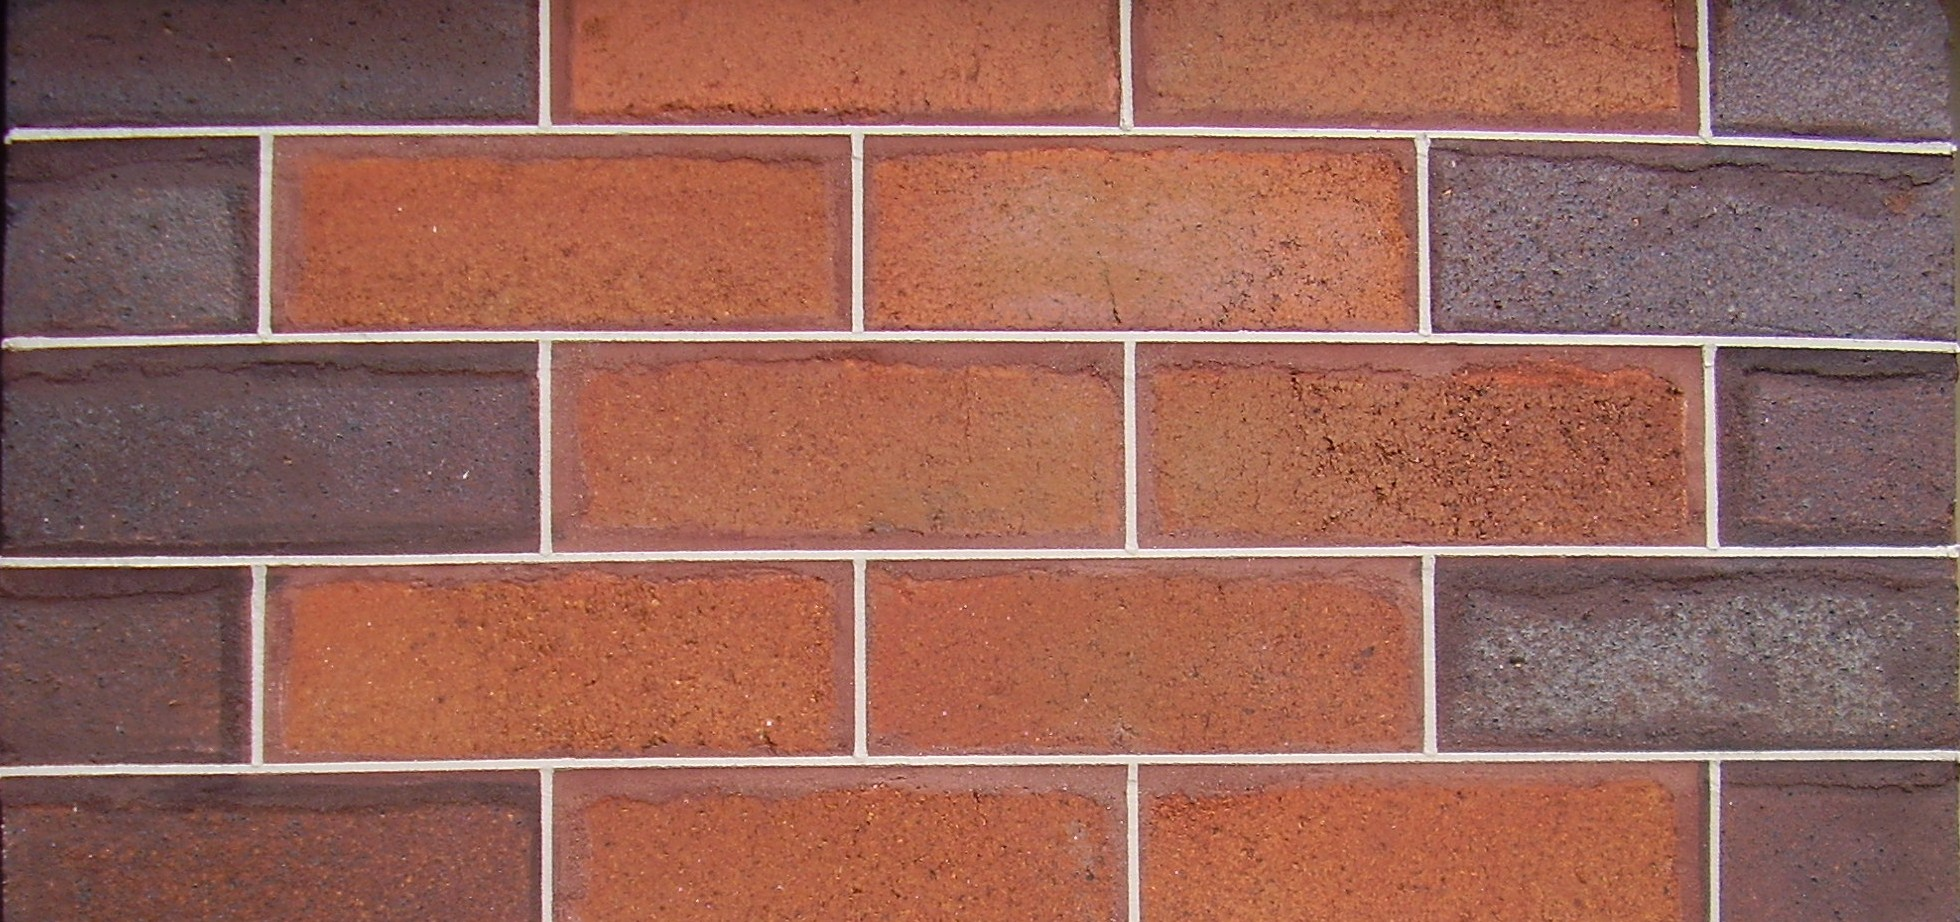 Reliable tuckpointing contractor